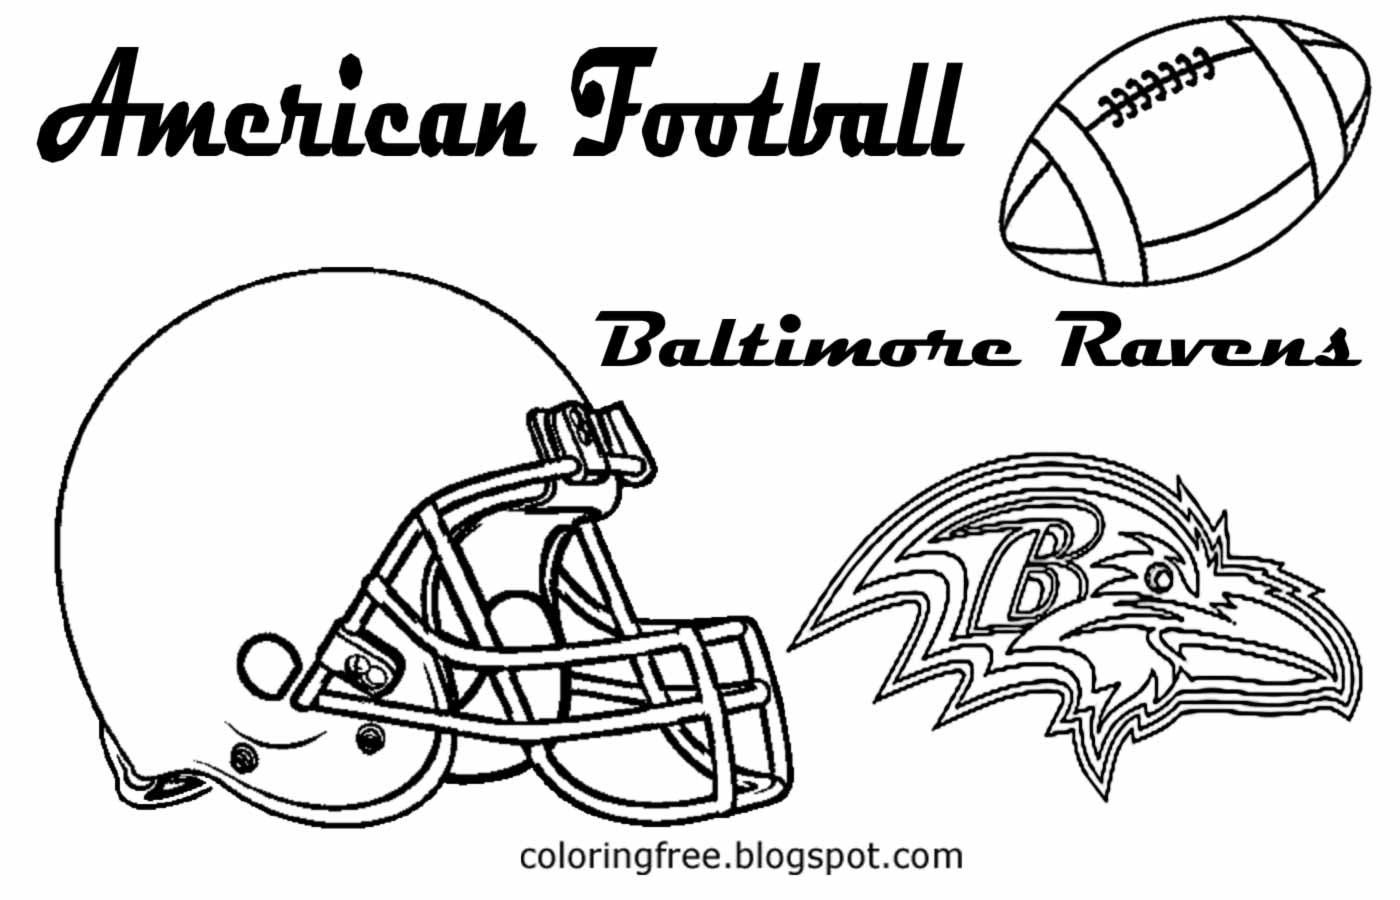 Uncategorized Baltimore Ravens Coloring Pages free coloring pages printable pictures to color kids drawing ideas baltimore ravens north american football for boys us sports easy clipart